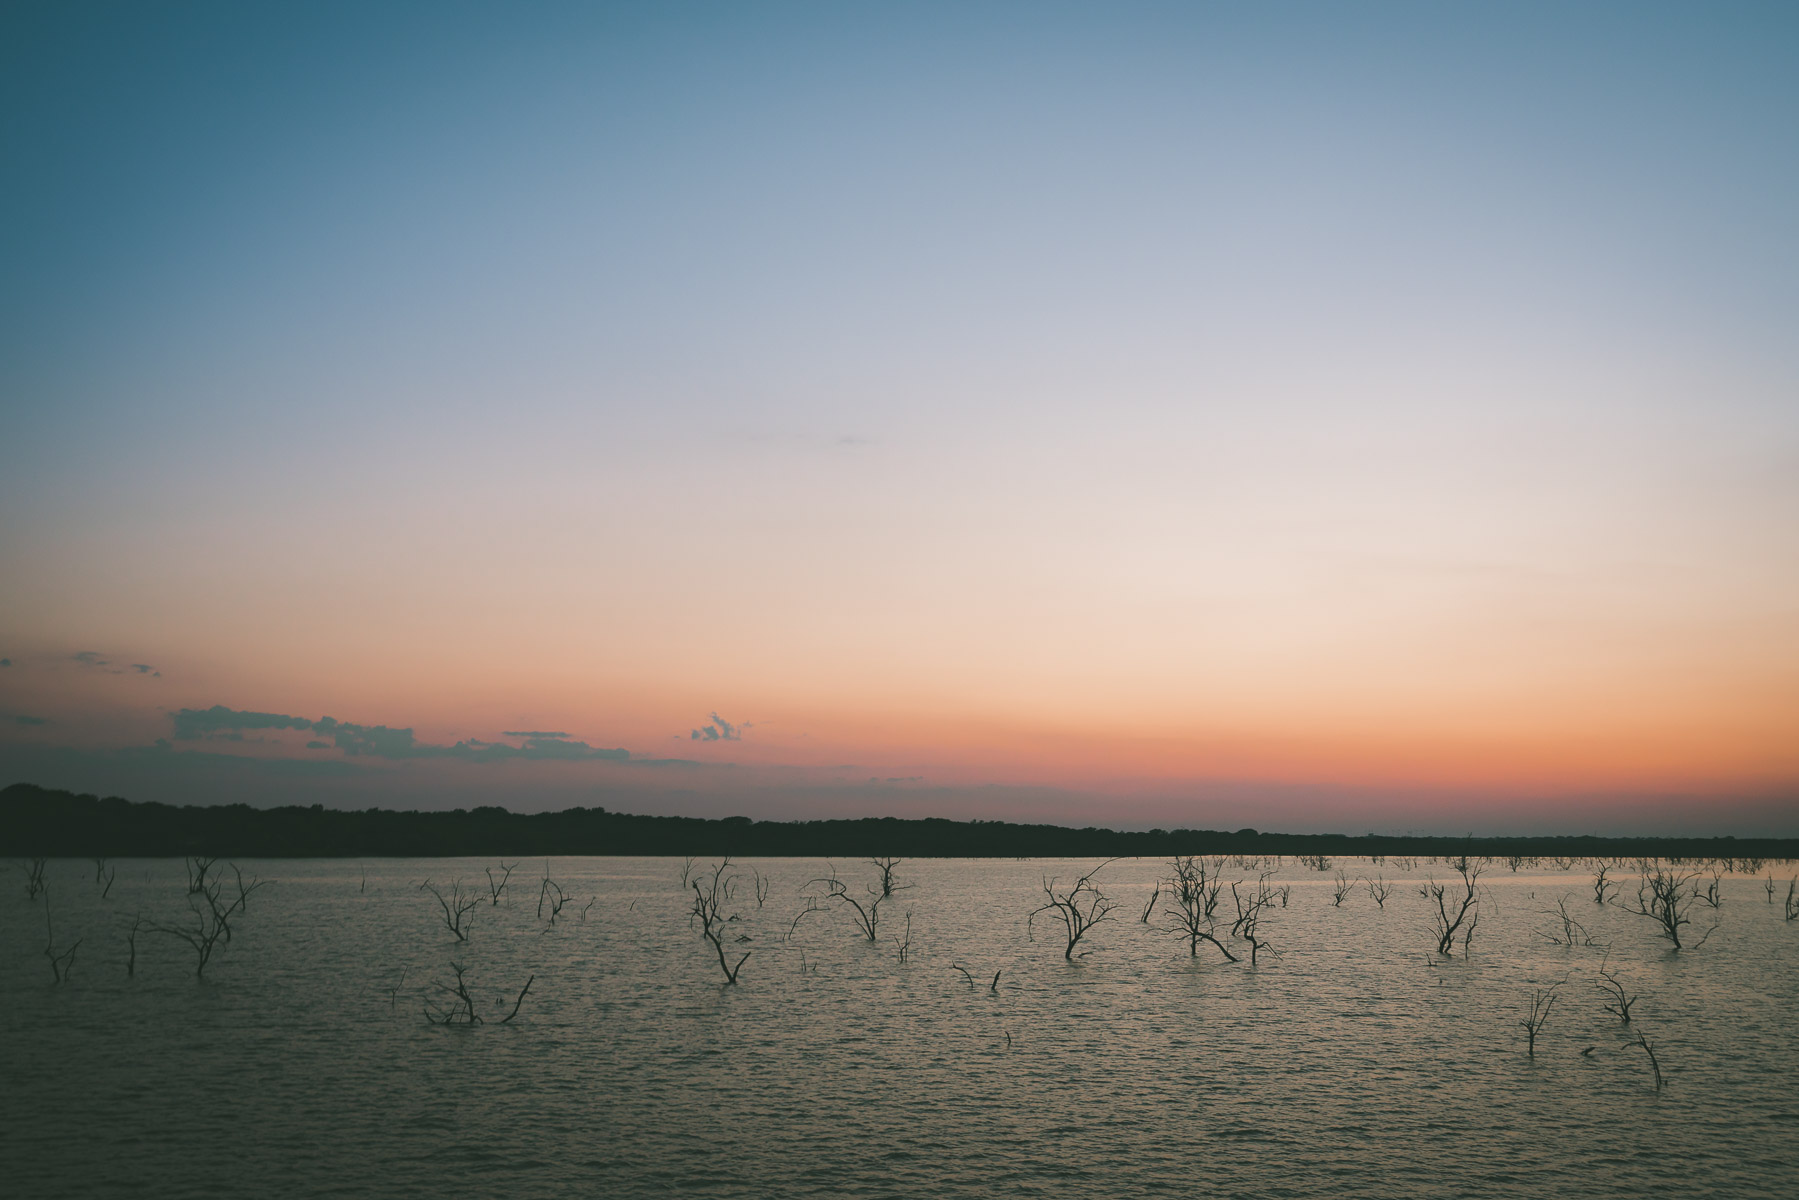 Trees—remnants from the 1953 impoundment of North Texas' Lake Lavon—poke from the water into the evening sky near the town of Princeton.